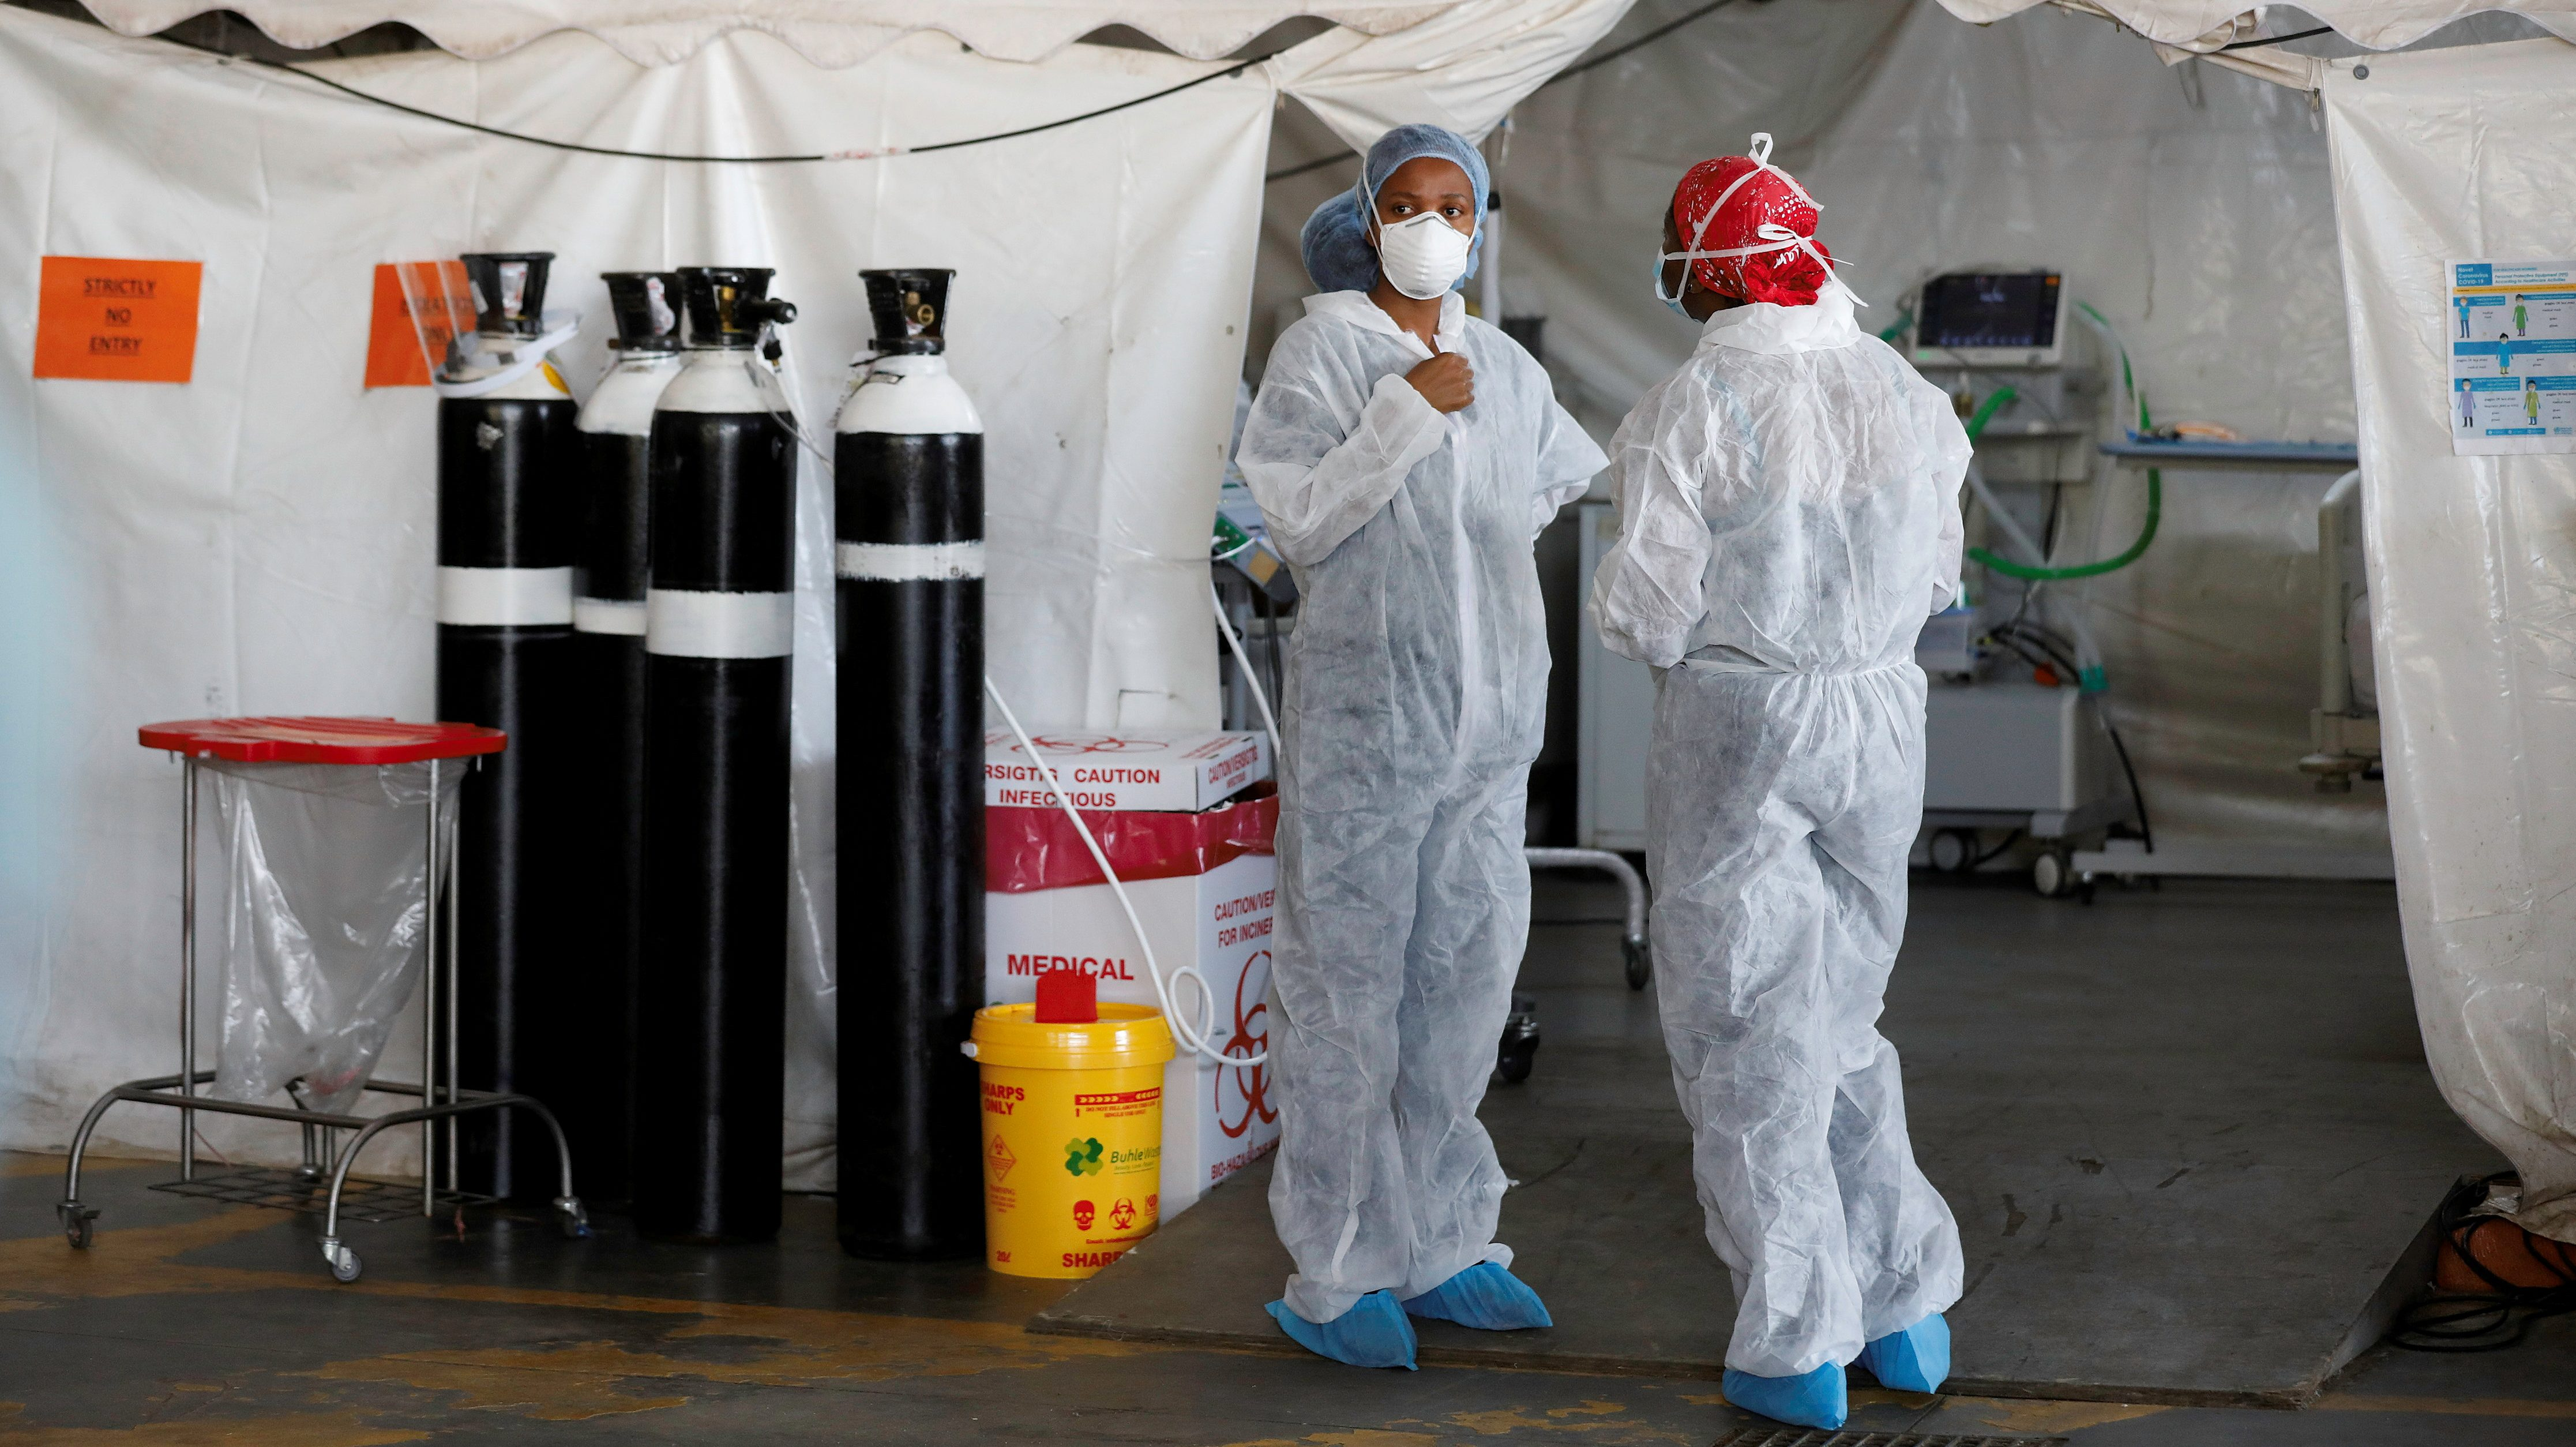 Healthcare workers chat at a temporary ward set up during the coronavirus disease (COVID-19) outbreak, at Steve Biko Academic Hospital in Pretoria, South Africa, January 19, 2021.